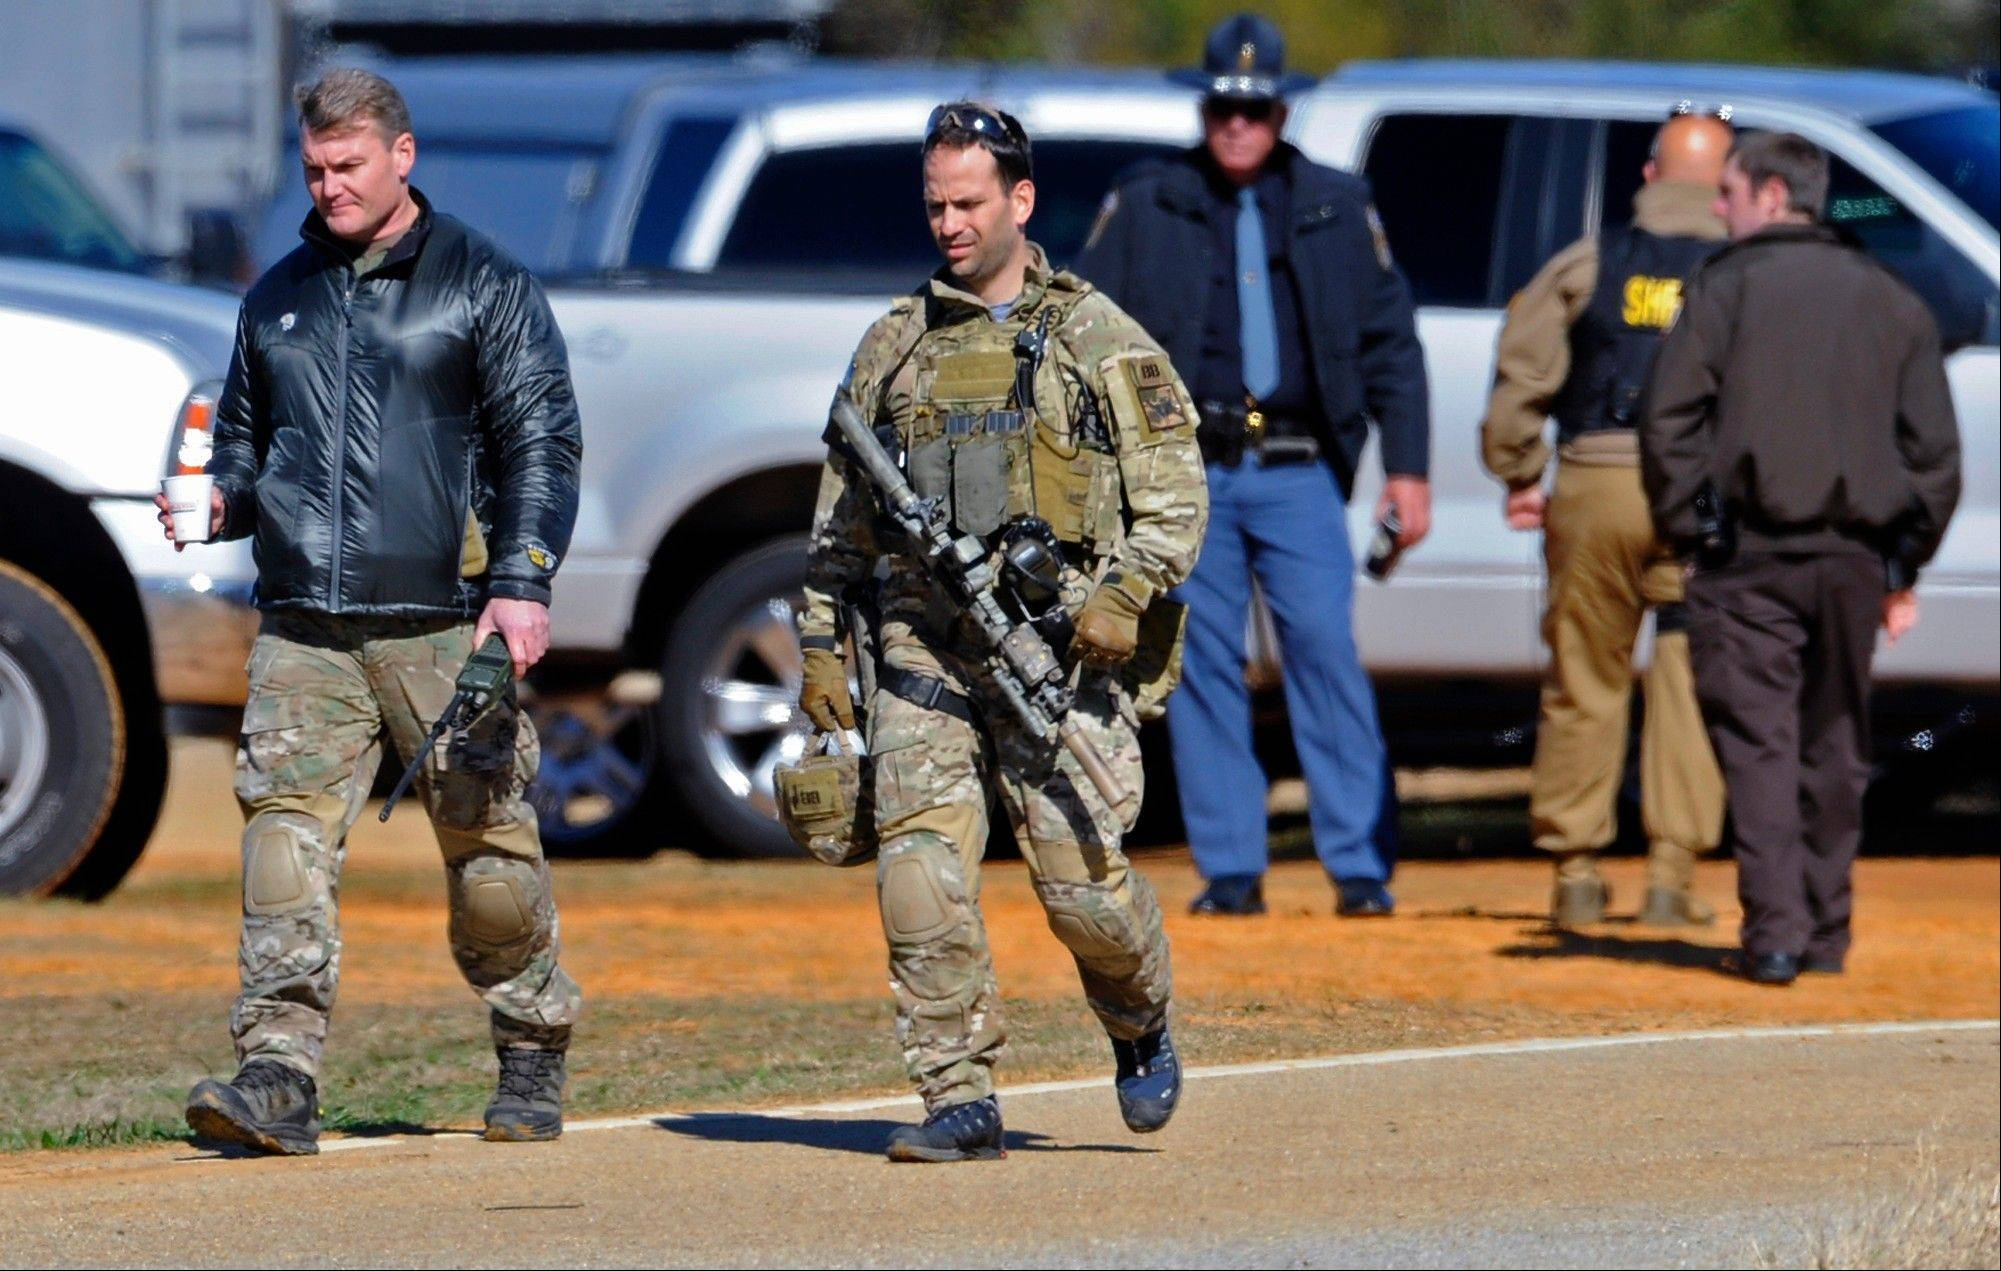 Law officers at the Dale County hostage scene in Midland City, Ala. on Thursday morning, Jan. 31, 2013. A gunman holed up in a bunker with a 6-year-old hostage has kept law officers at bay since the standoff began when he killed a school bus driver and dragged the boy away, authorities said.